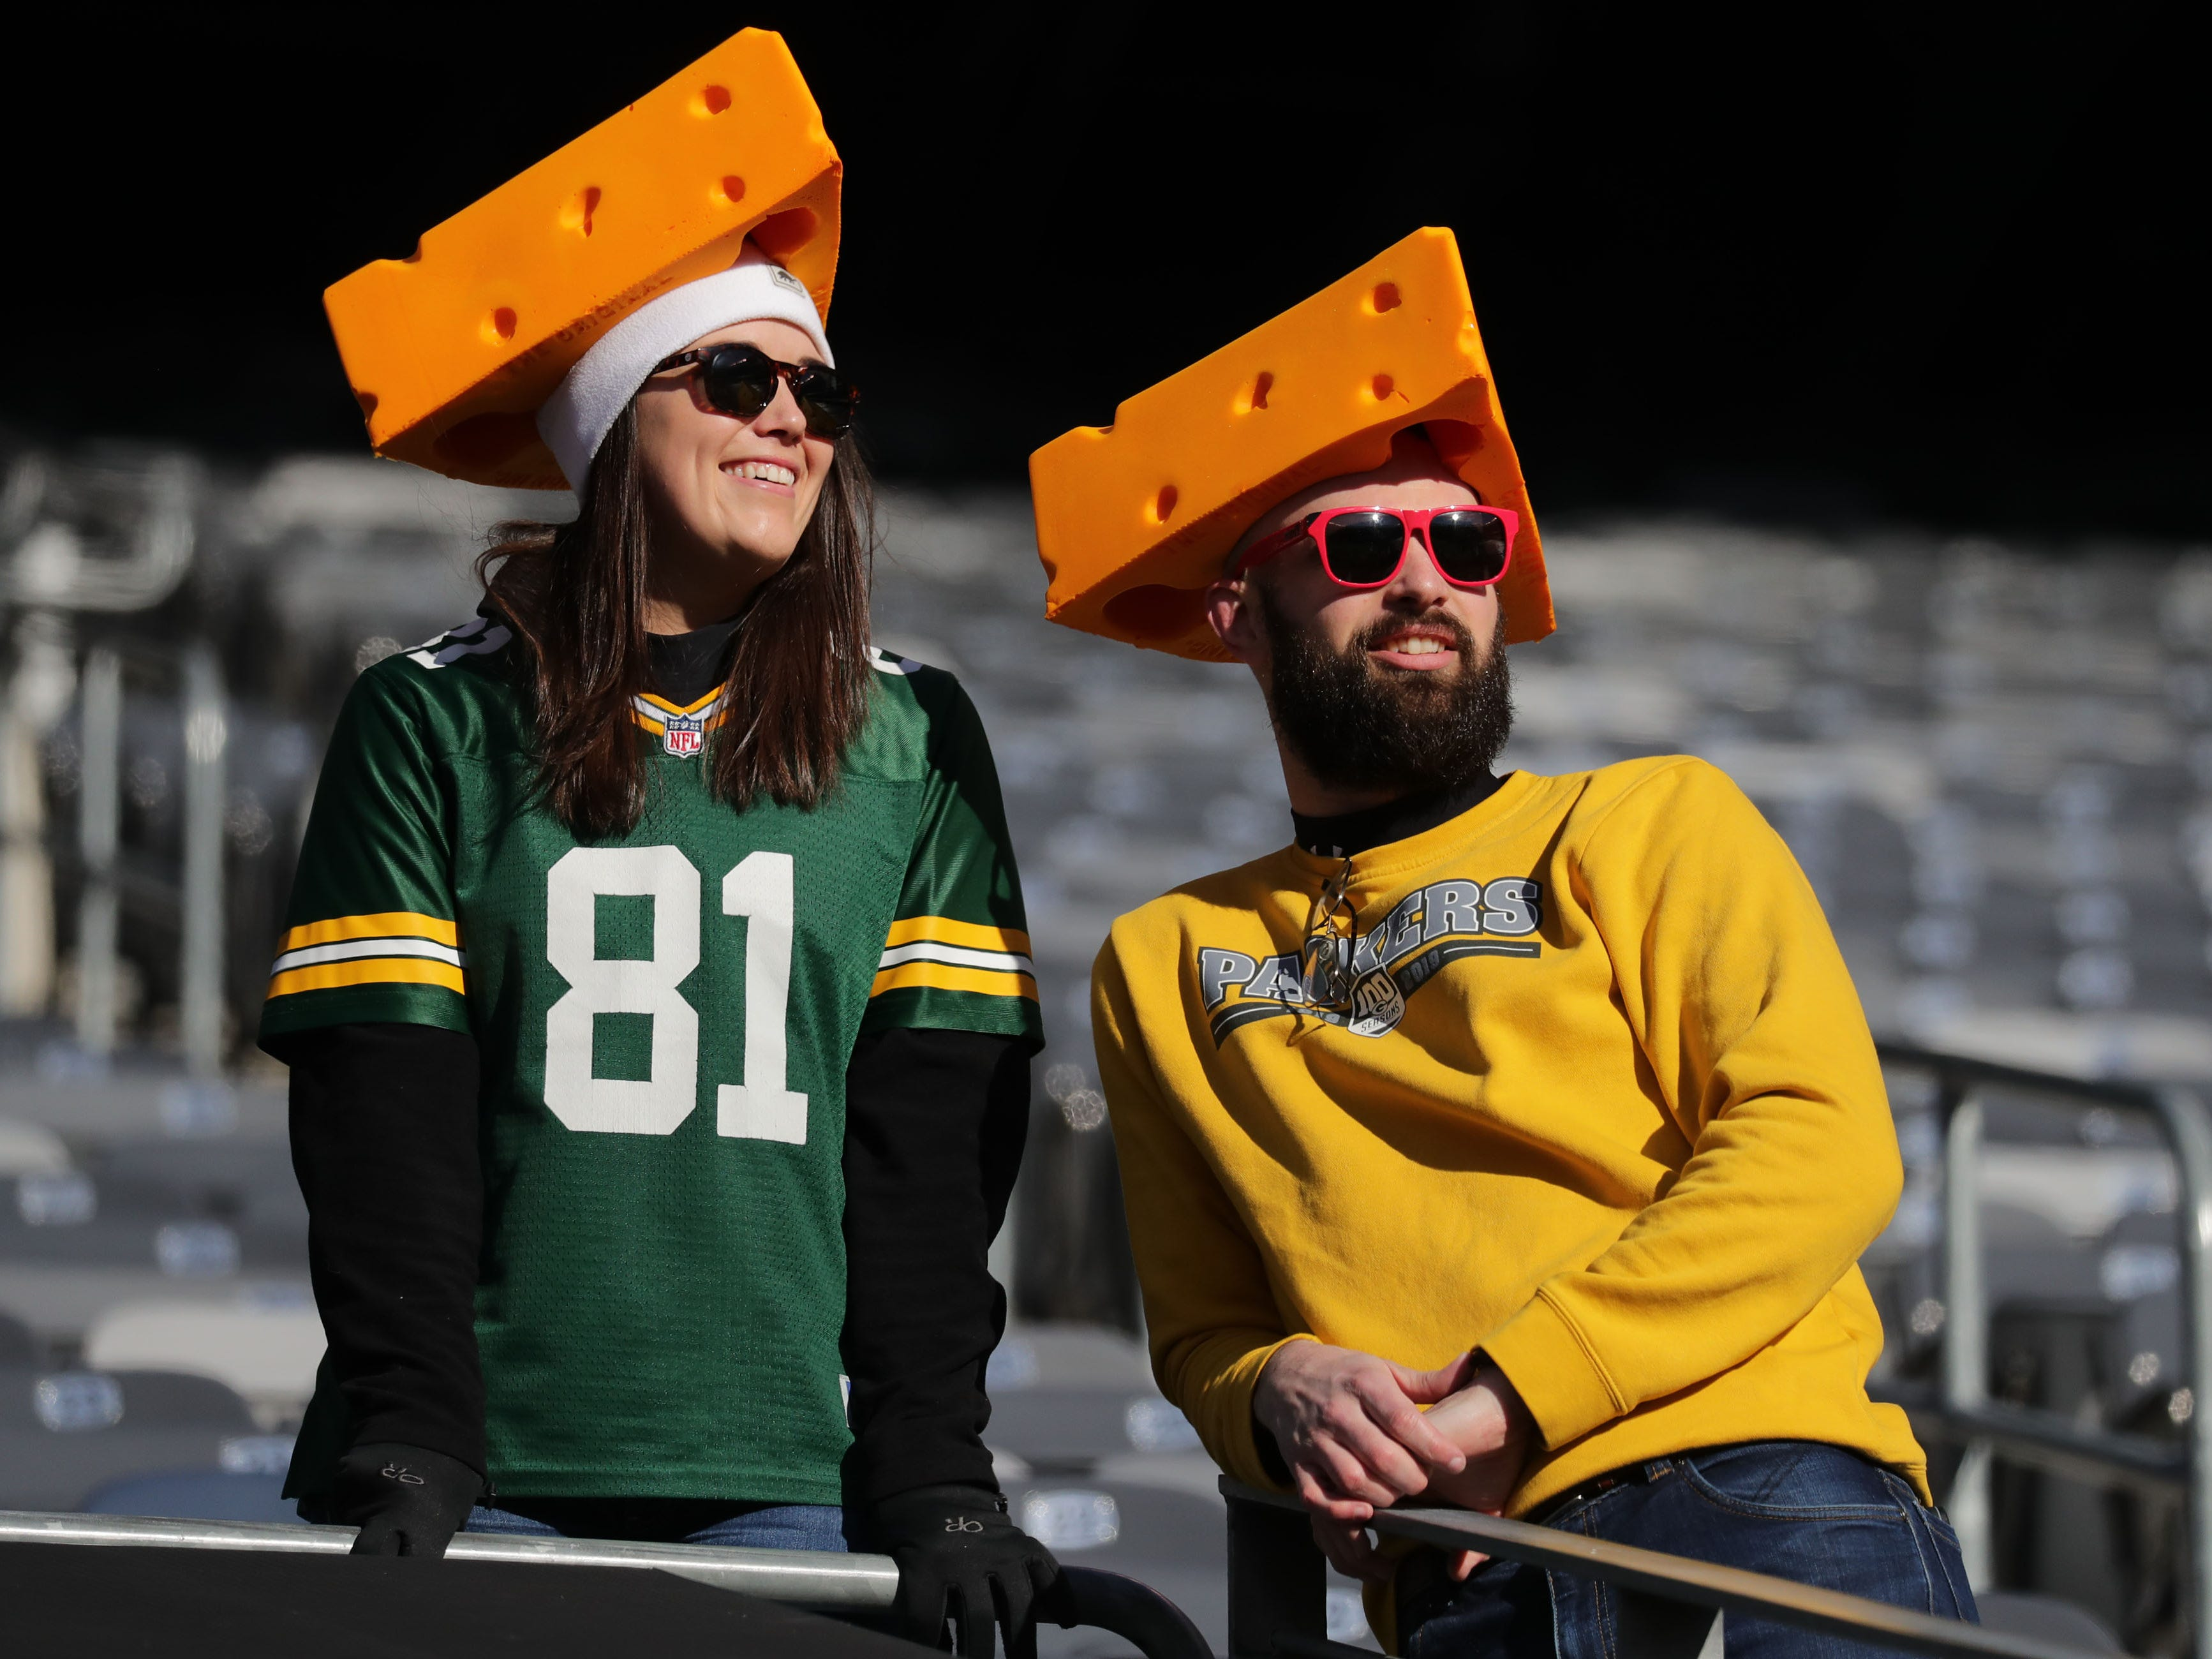 Green Bay Packers fans don cheesehead hats before the Green Bay Packers game against the New York Jets at MetLife Stadium Sunday, Dec. 23, 2018, in East Rutherford.